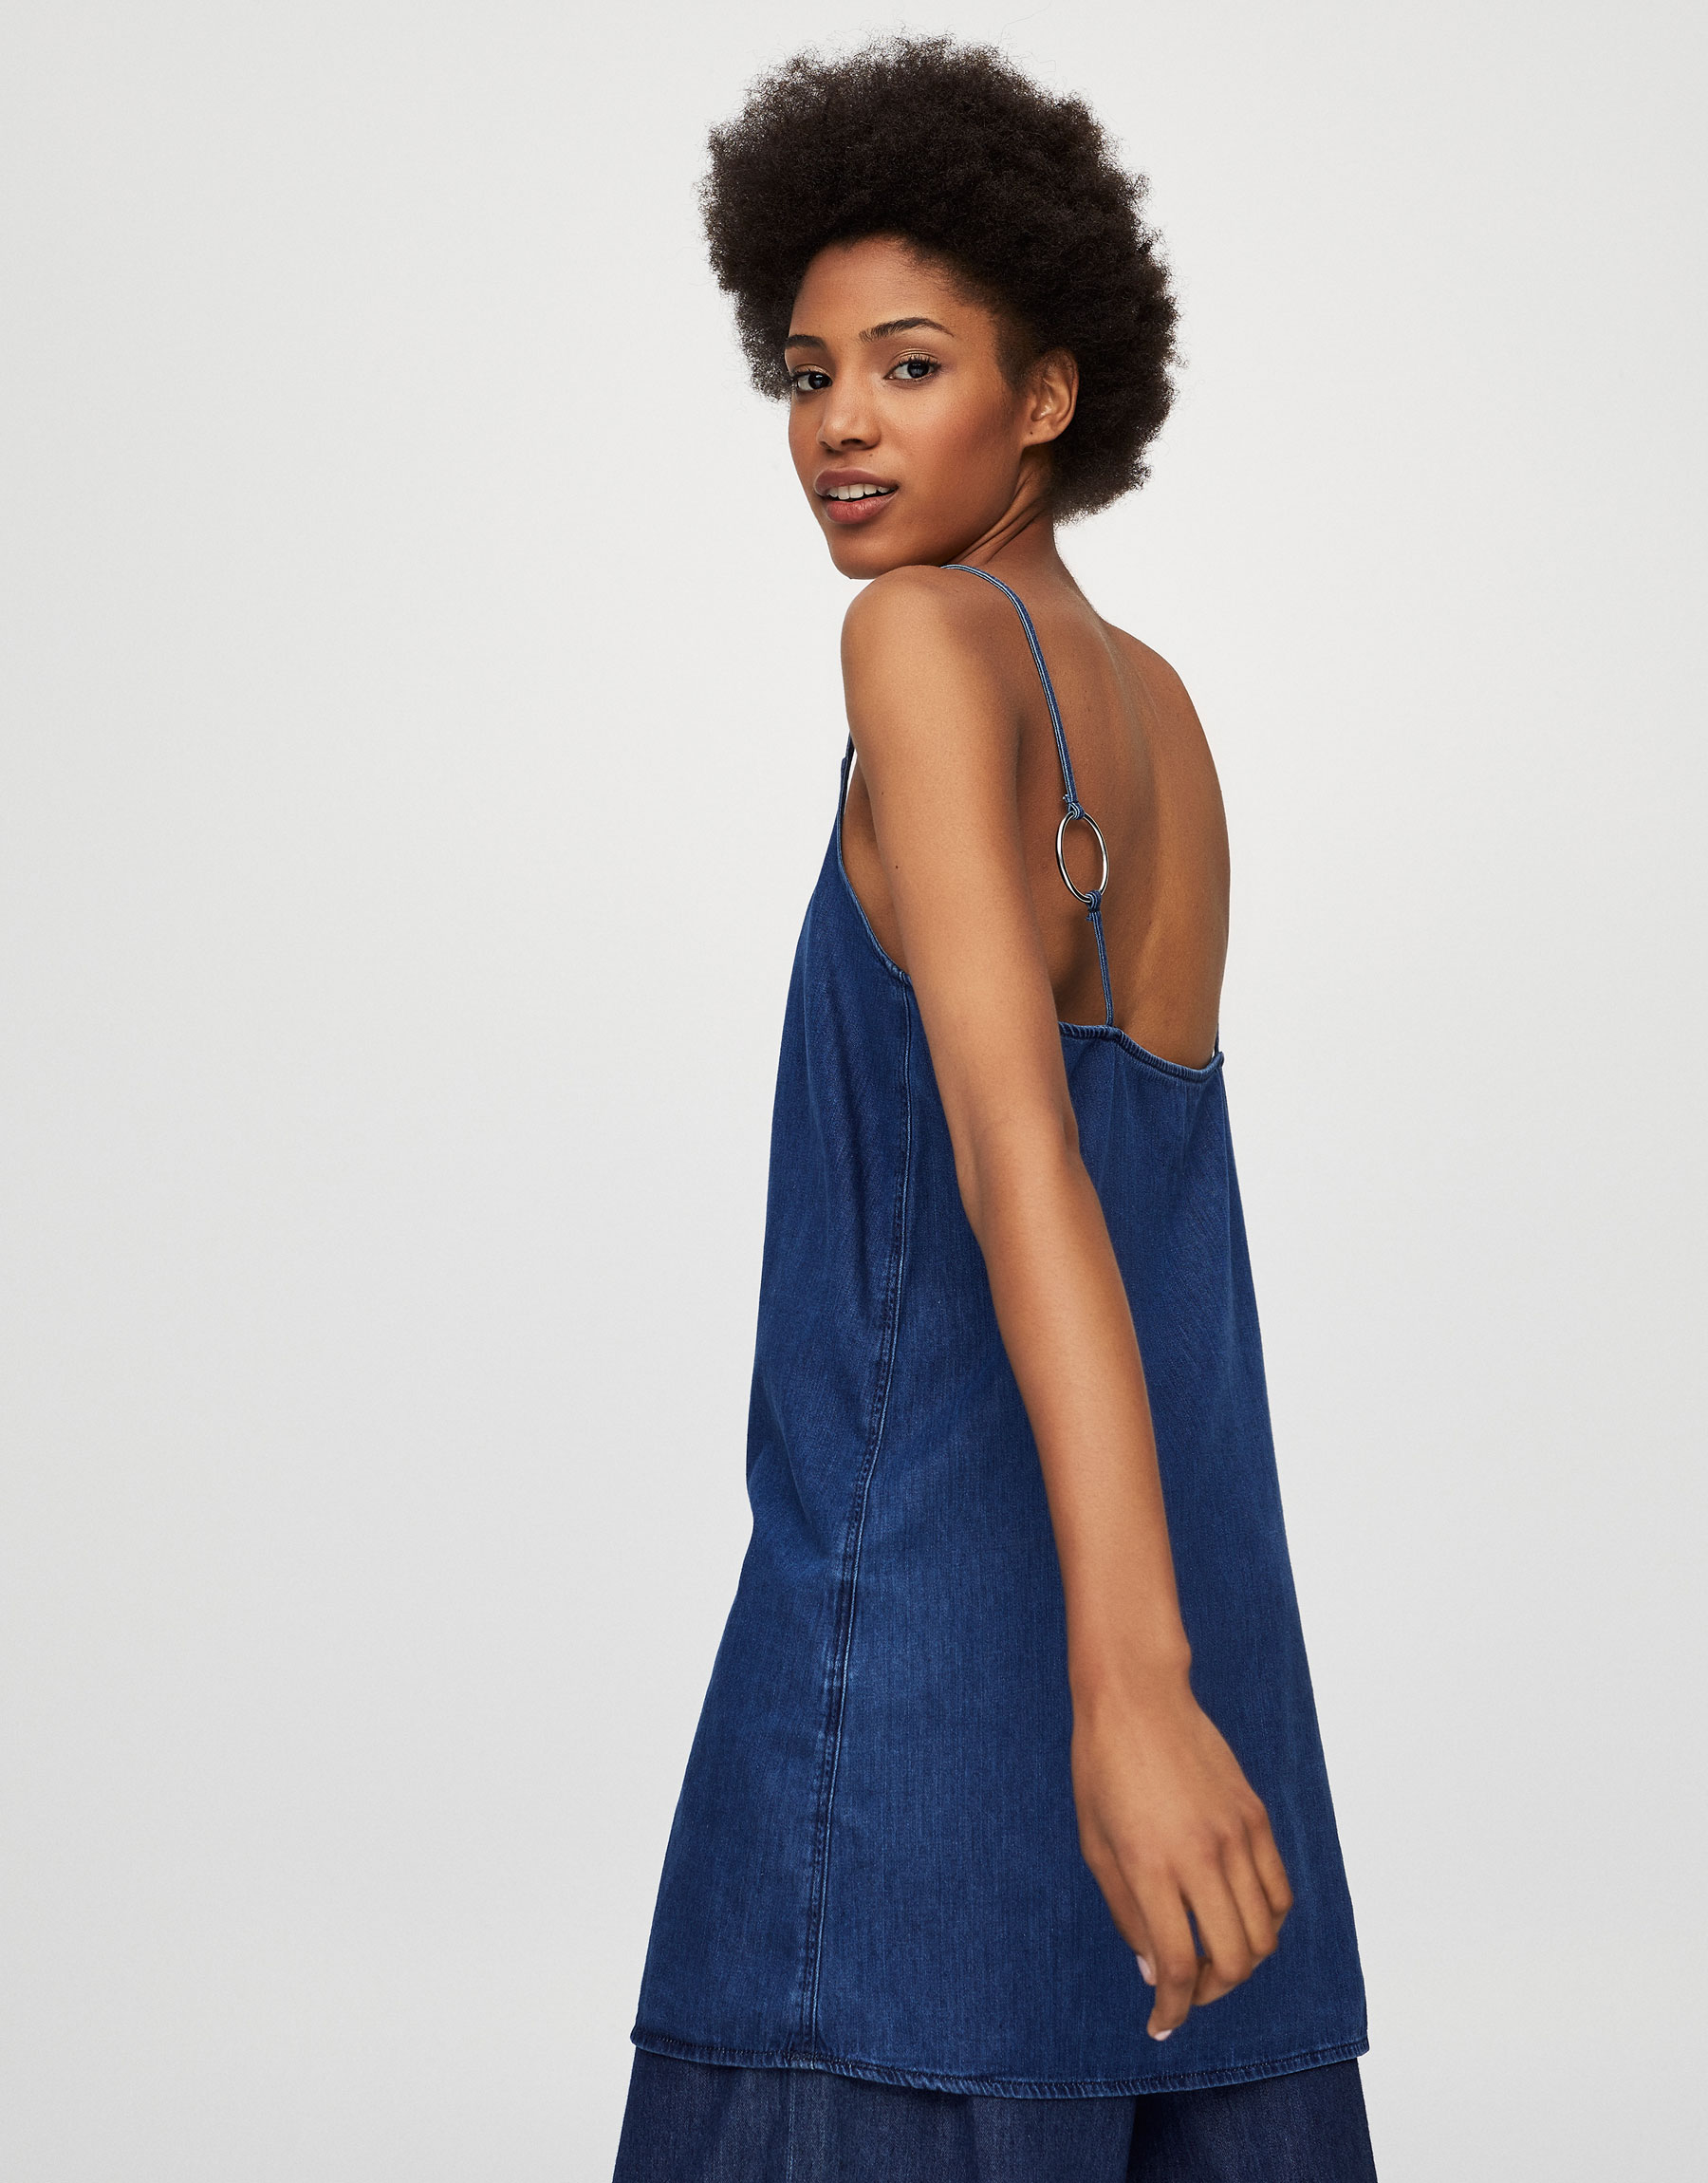 Denim dress with ring detail on the straps